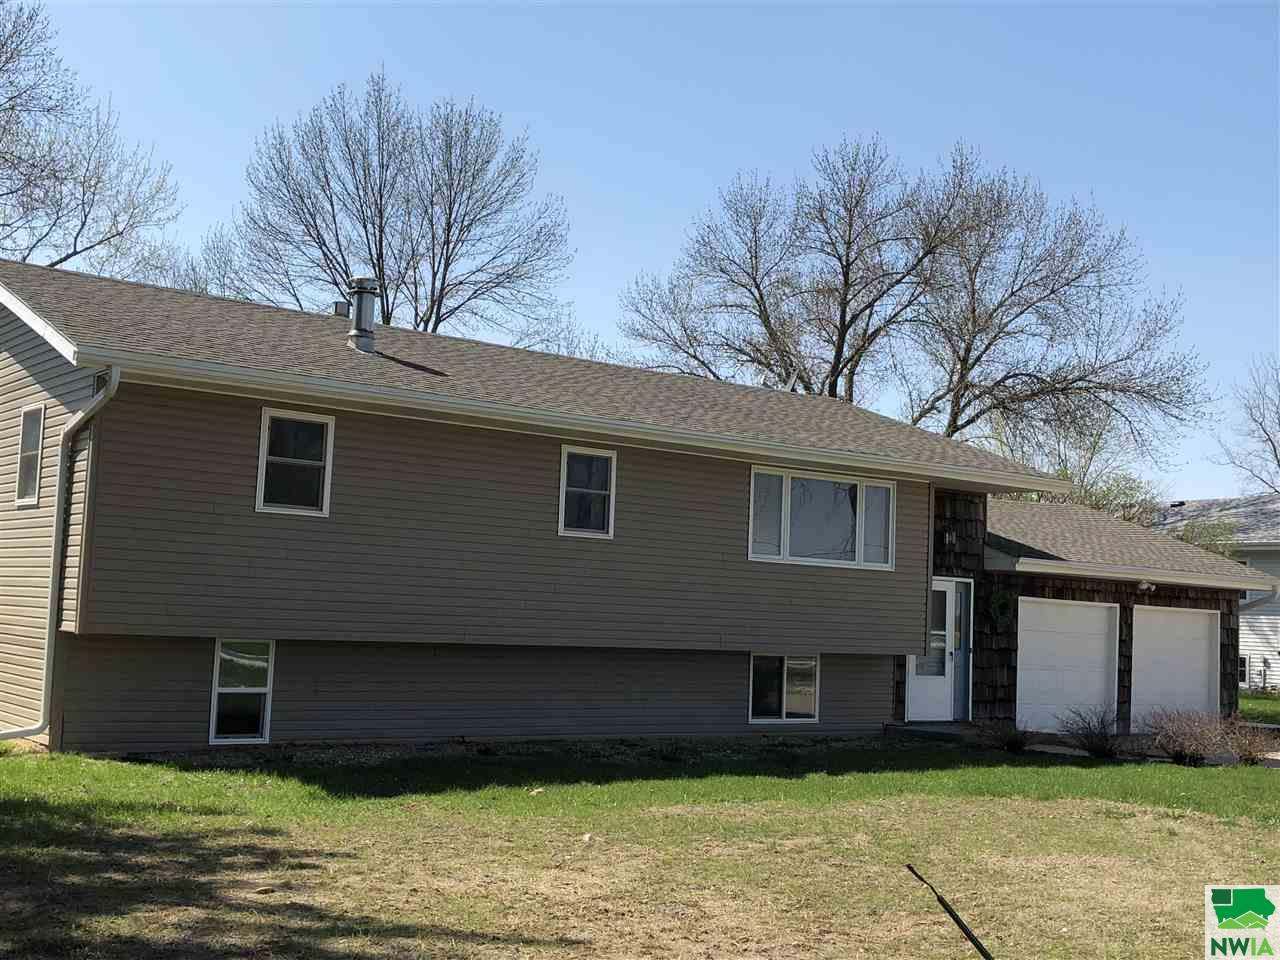 Property for sale at 114 Pioneer Valley Rd, Sergeant Bluff,  IA 51054